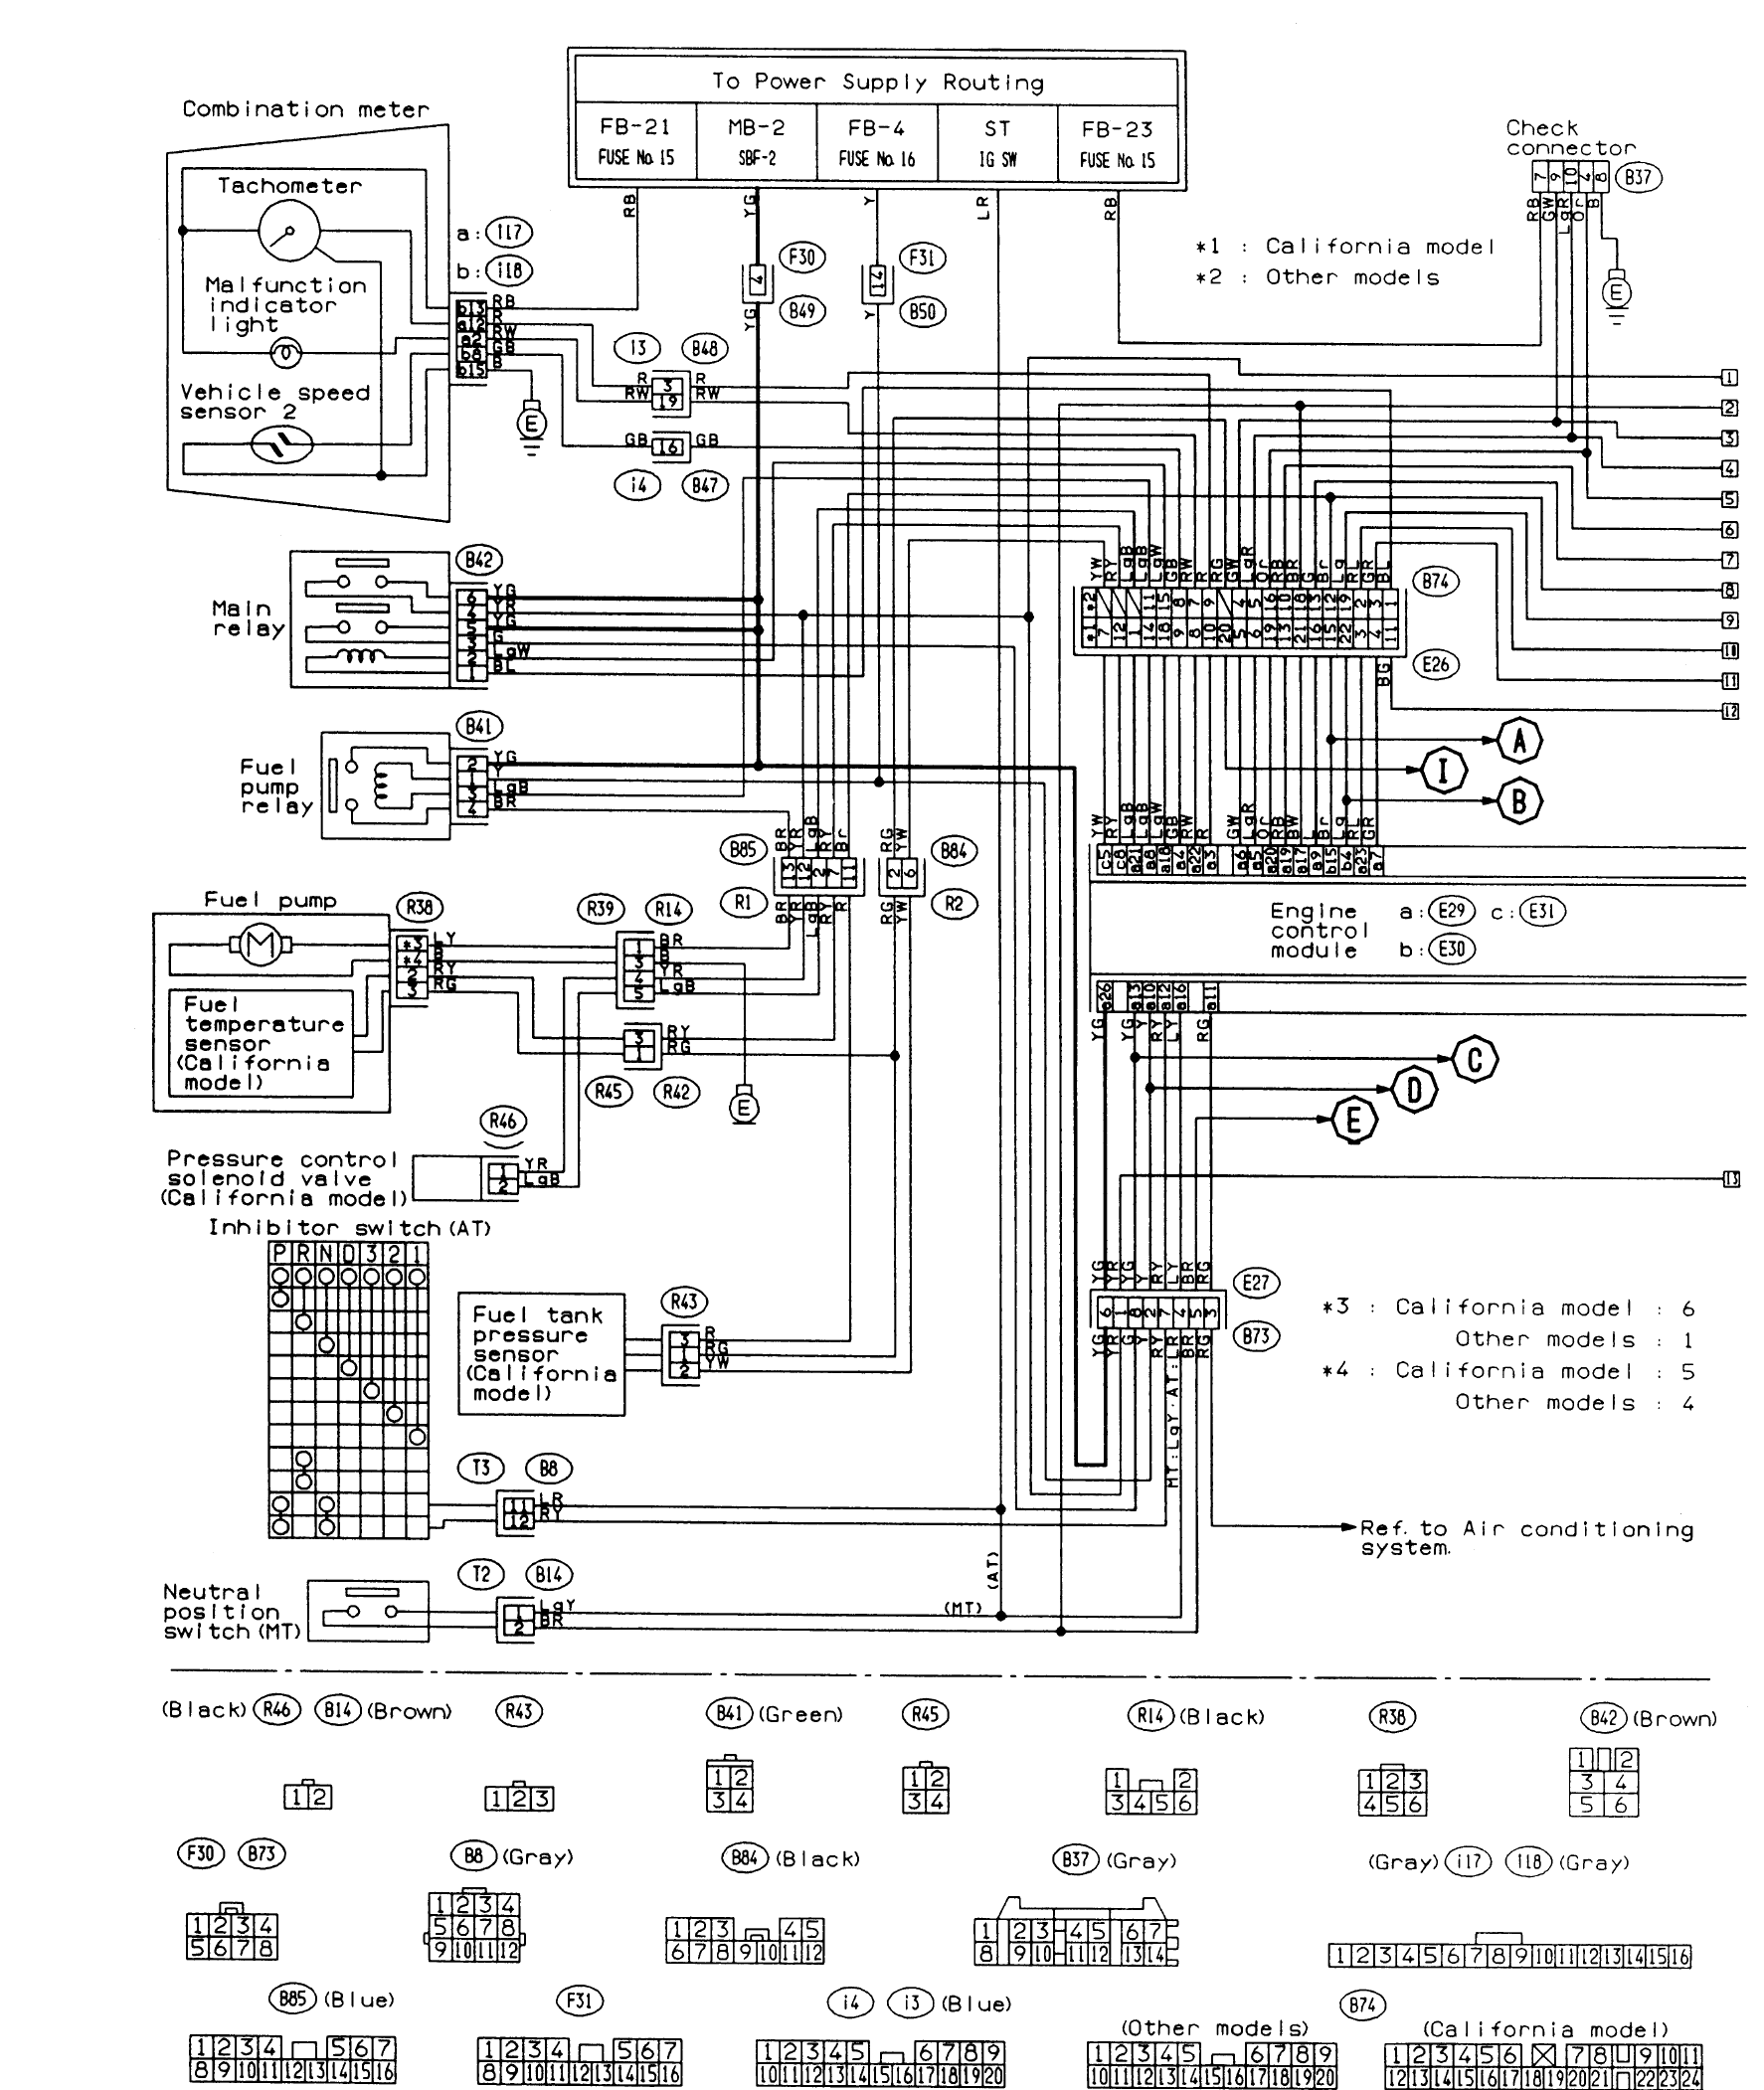 Superb Electrical Diagram For Ac Unit In 2009 Subaru Forester Pinouts For Ranpur Mohammedshrine Wiring Digital Resources Ranpurmohammedshrineorg